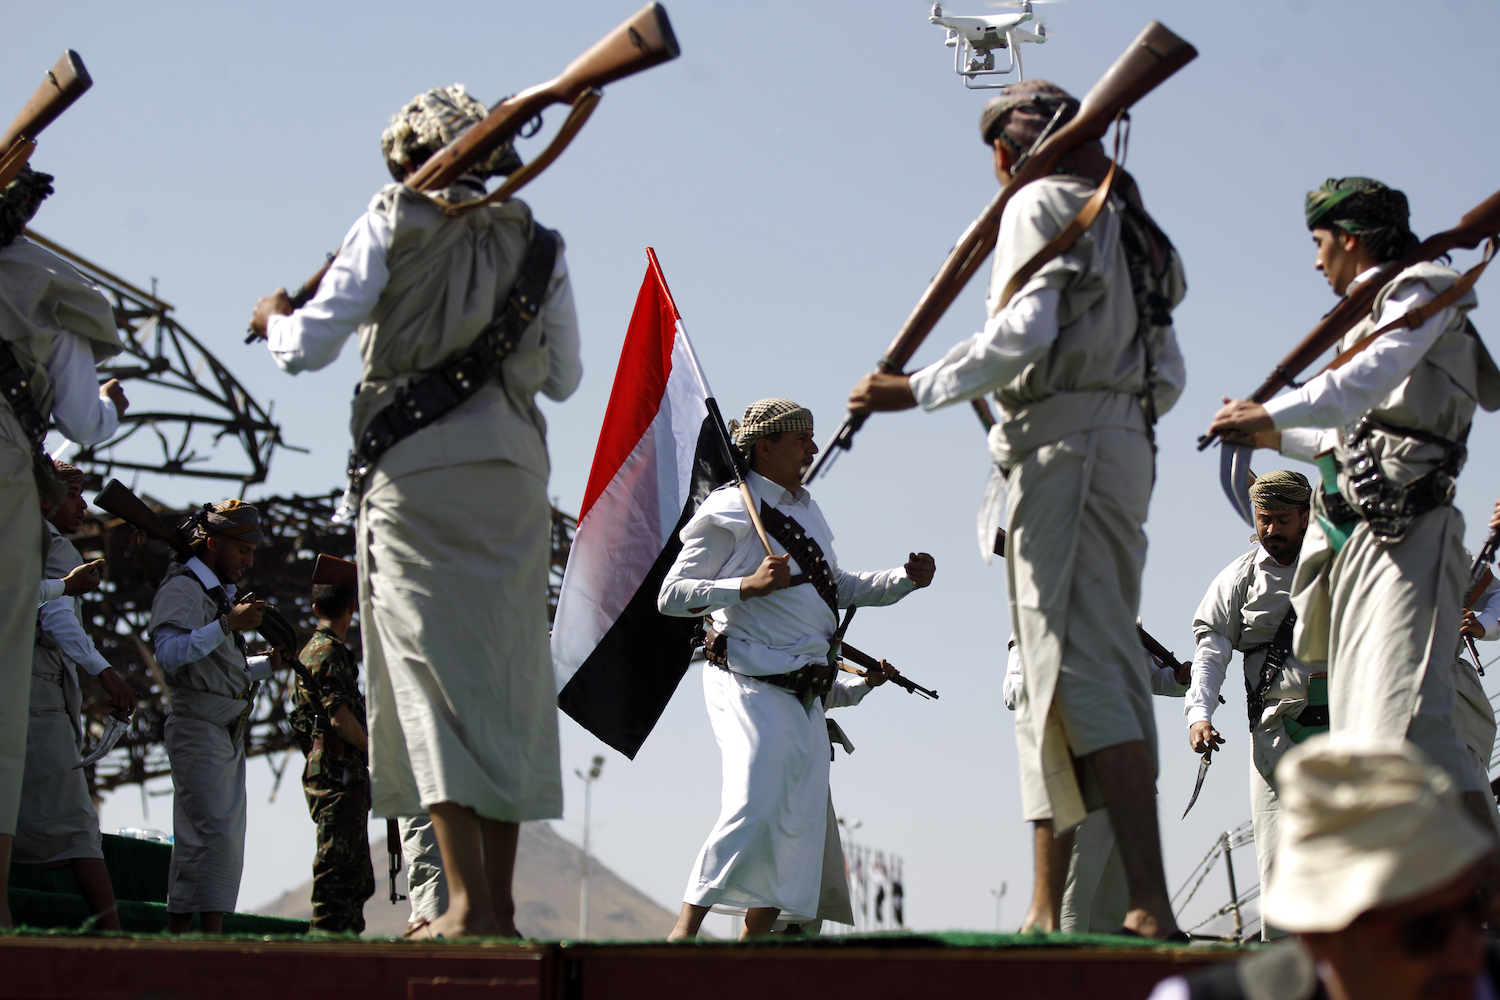 Performers dance during a rally to mark three years of war on the country, in the capital Sanaa on March 26, 2018. A Saudi-led military coalition intervened in Yemen on March 26, 2015 to restore the government of President Abedrabbo Mansour Hadi after the Iran-backed Huthis and their allies took over large parts of the country including the capital Sanaa.  / AFP PHOTO / MOHAMMED HUWAIS        (Photo credit should read MOHAMMED HUWAIS/AFP/Getty Images)